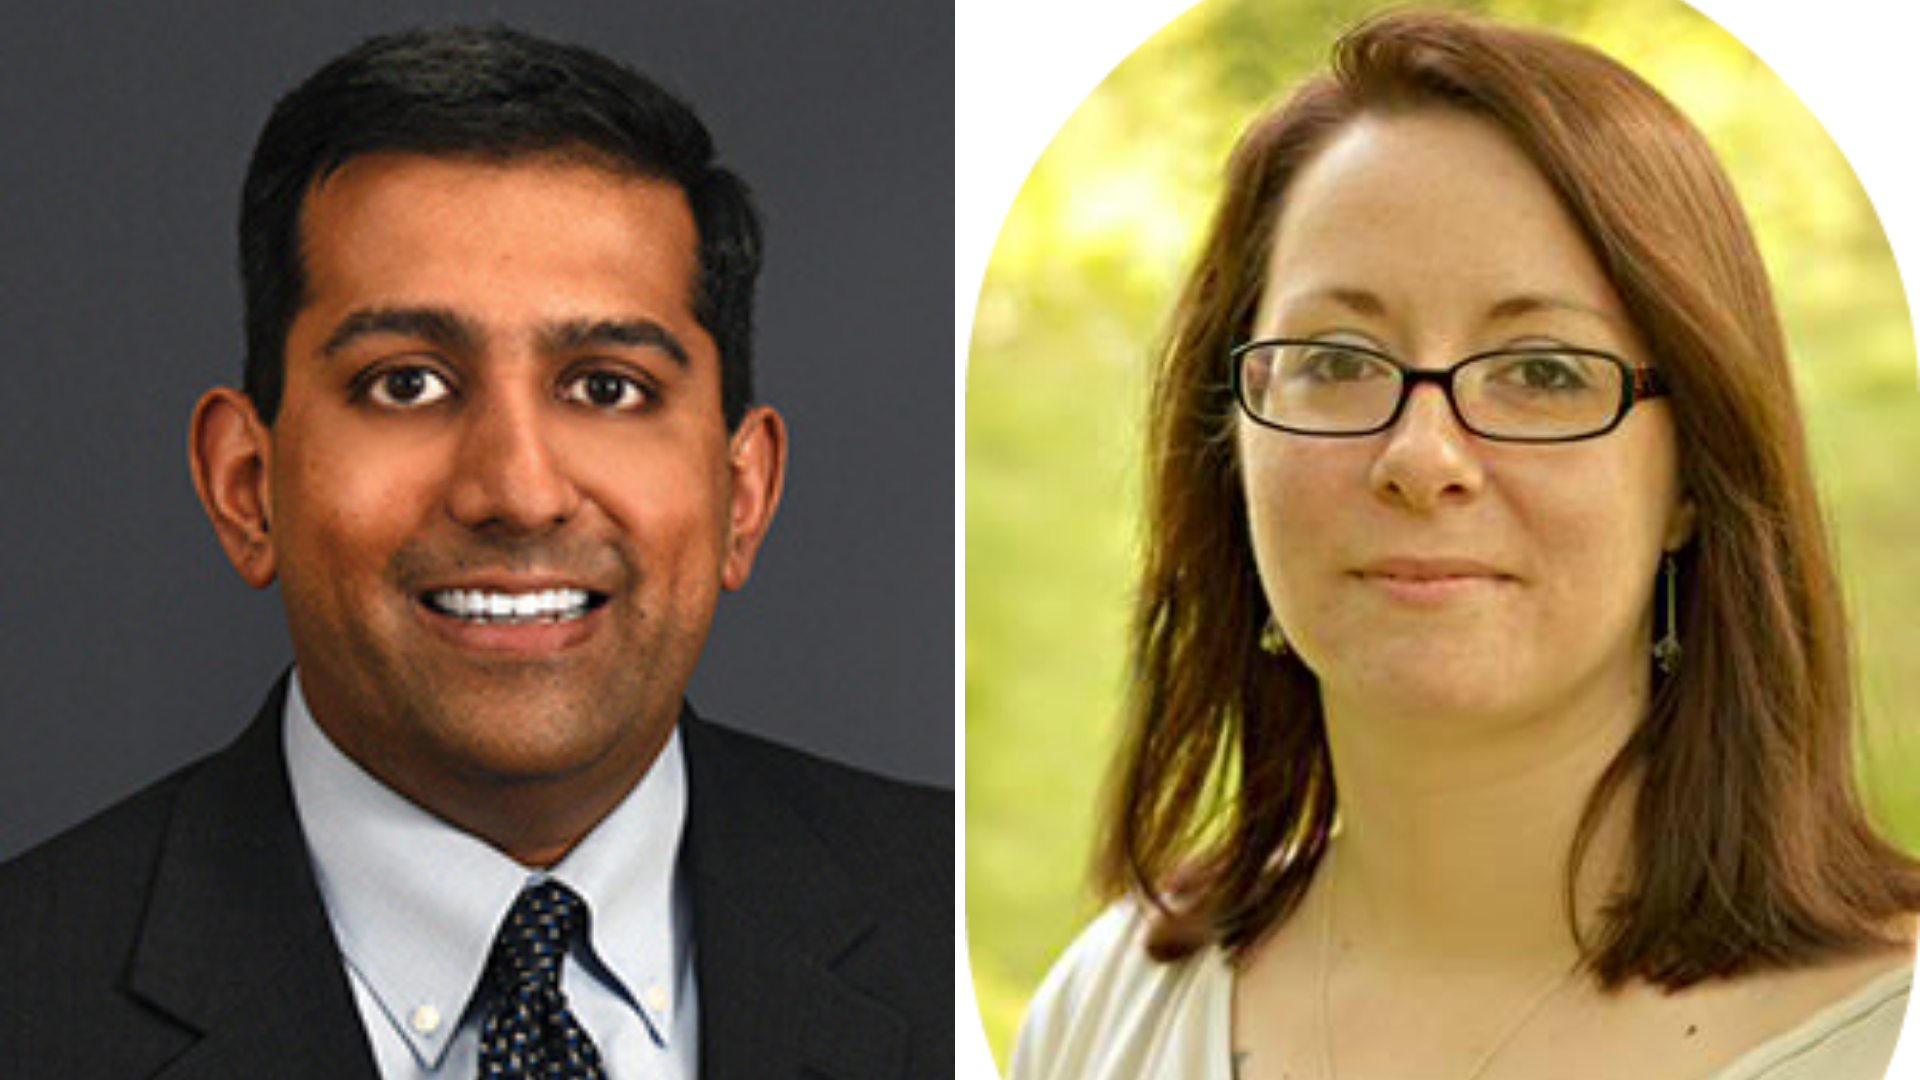 Dr. Arvind Venkat, MD, and Devany LeDrew appear on Smart Talk on March 18, 2020.